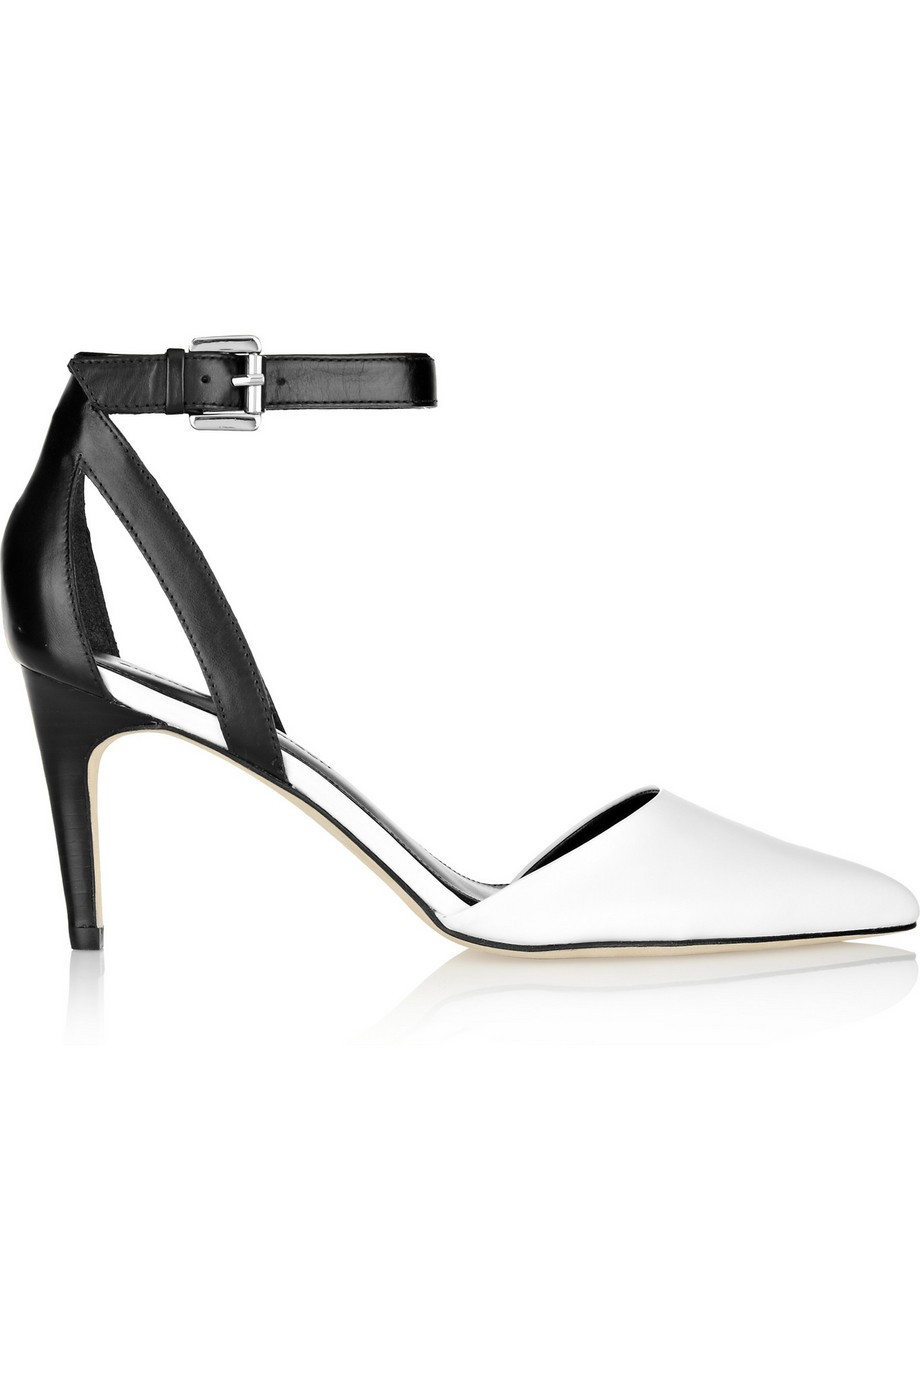 Saber two-tone leather pumps